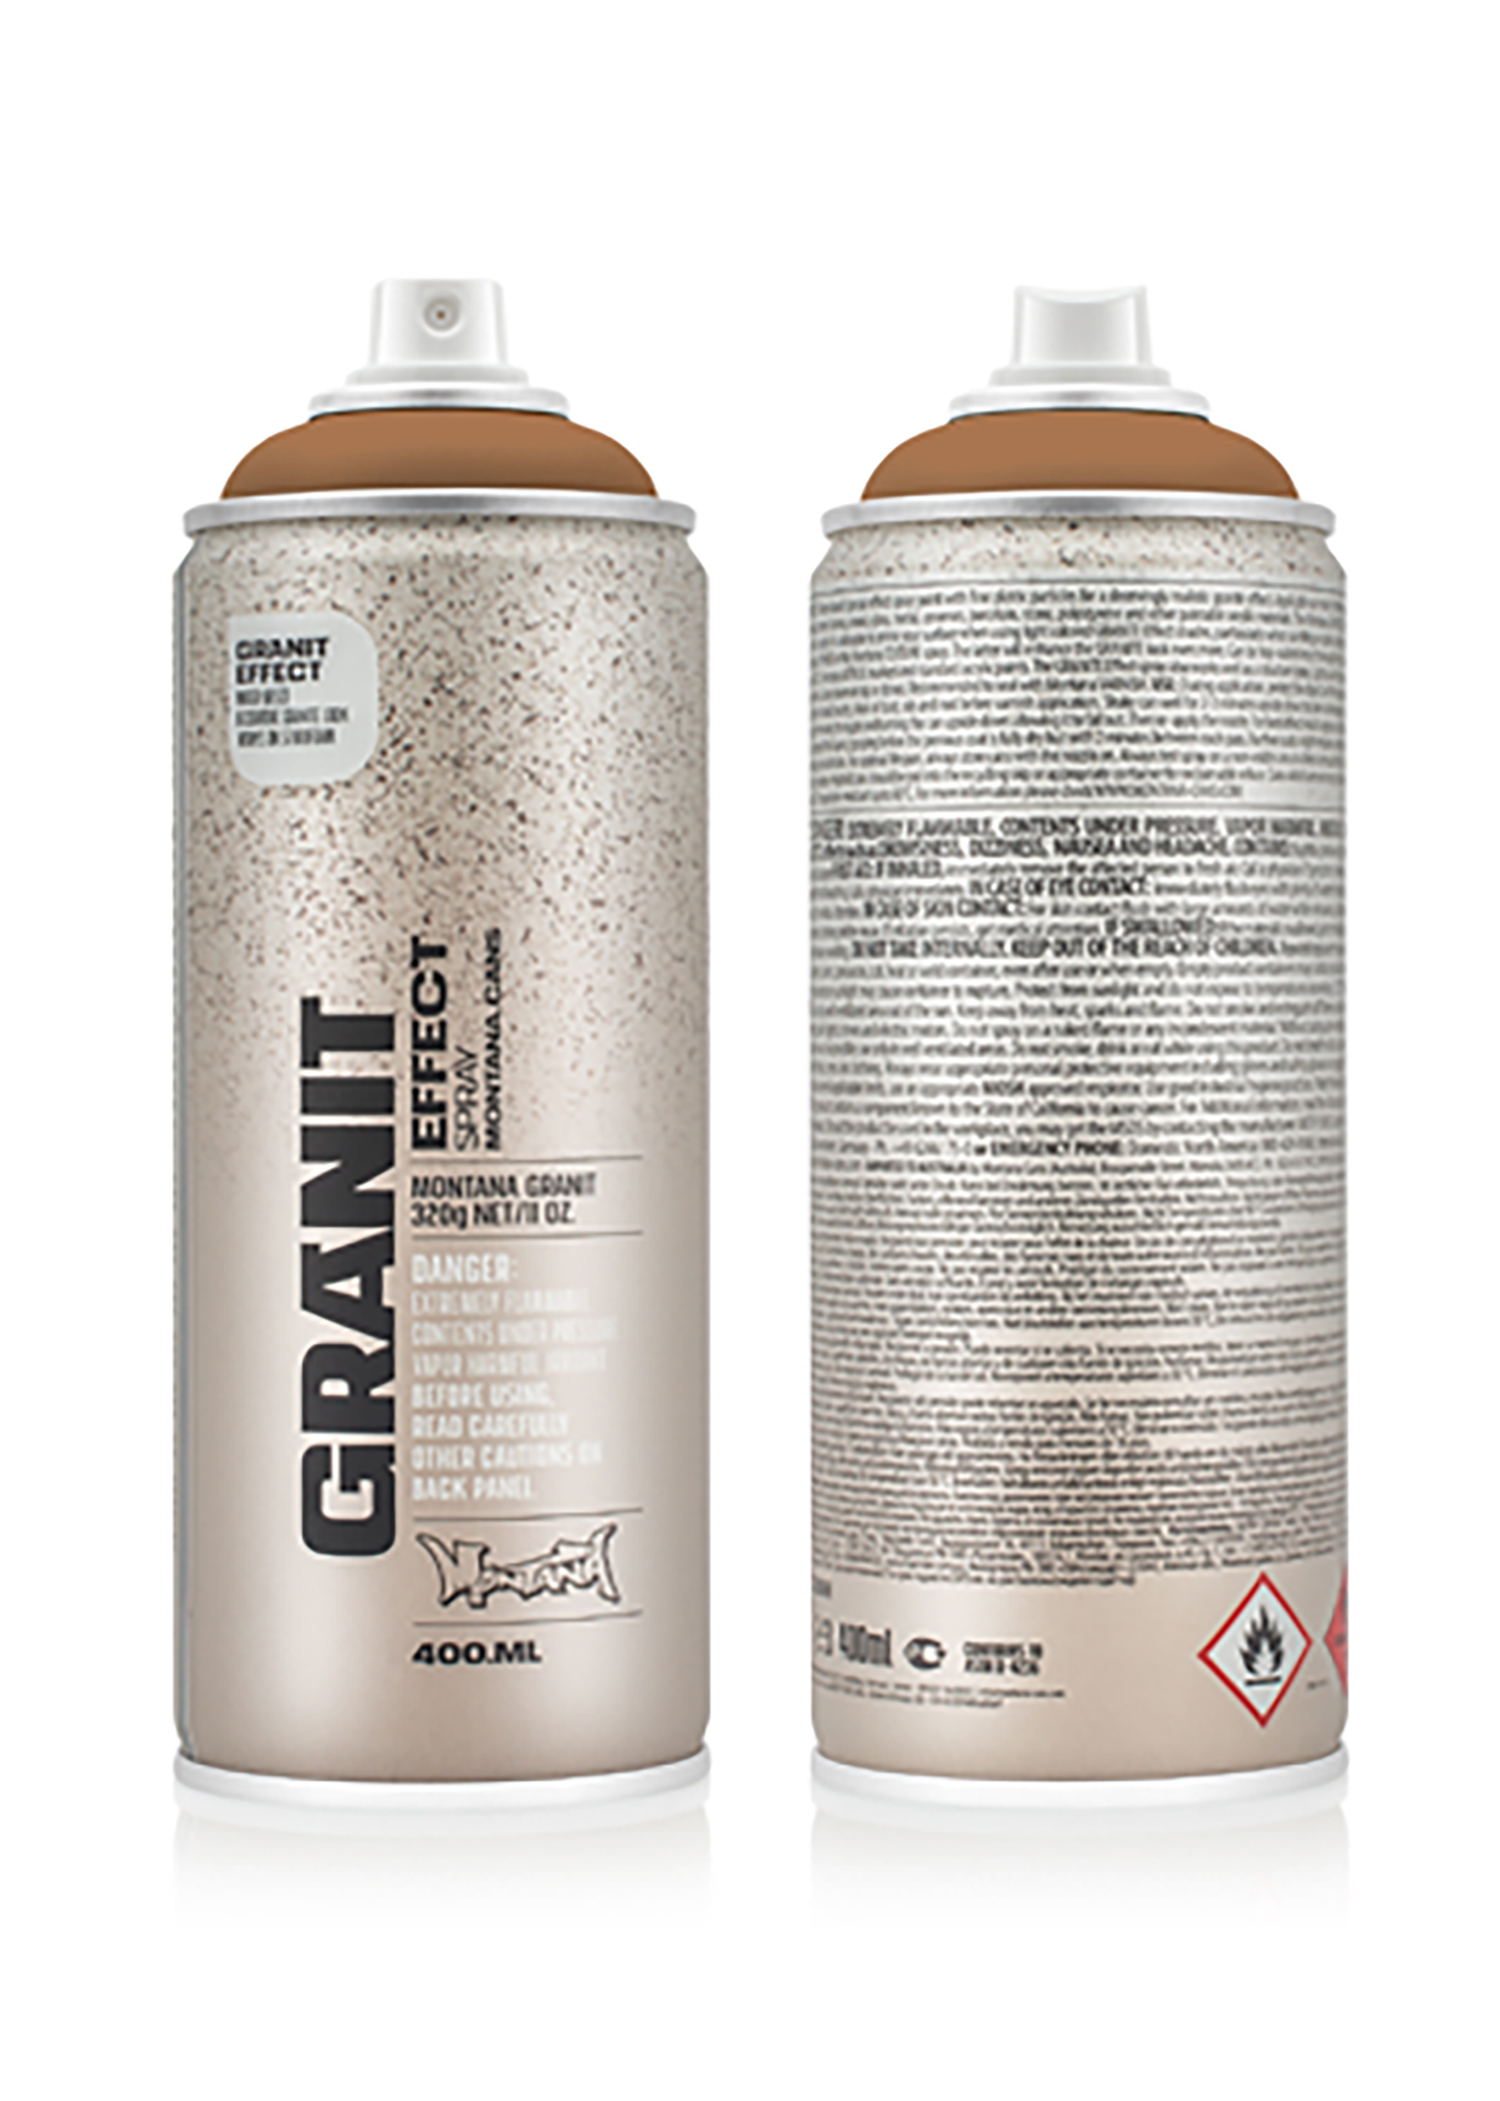 MONTANA-EFFECT-GRANIT-SPRAY-400ML_EG8000 Brown